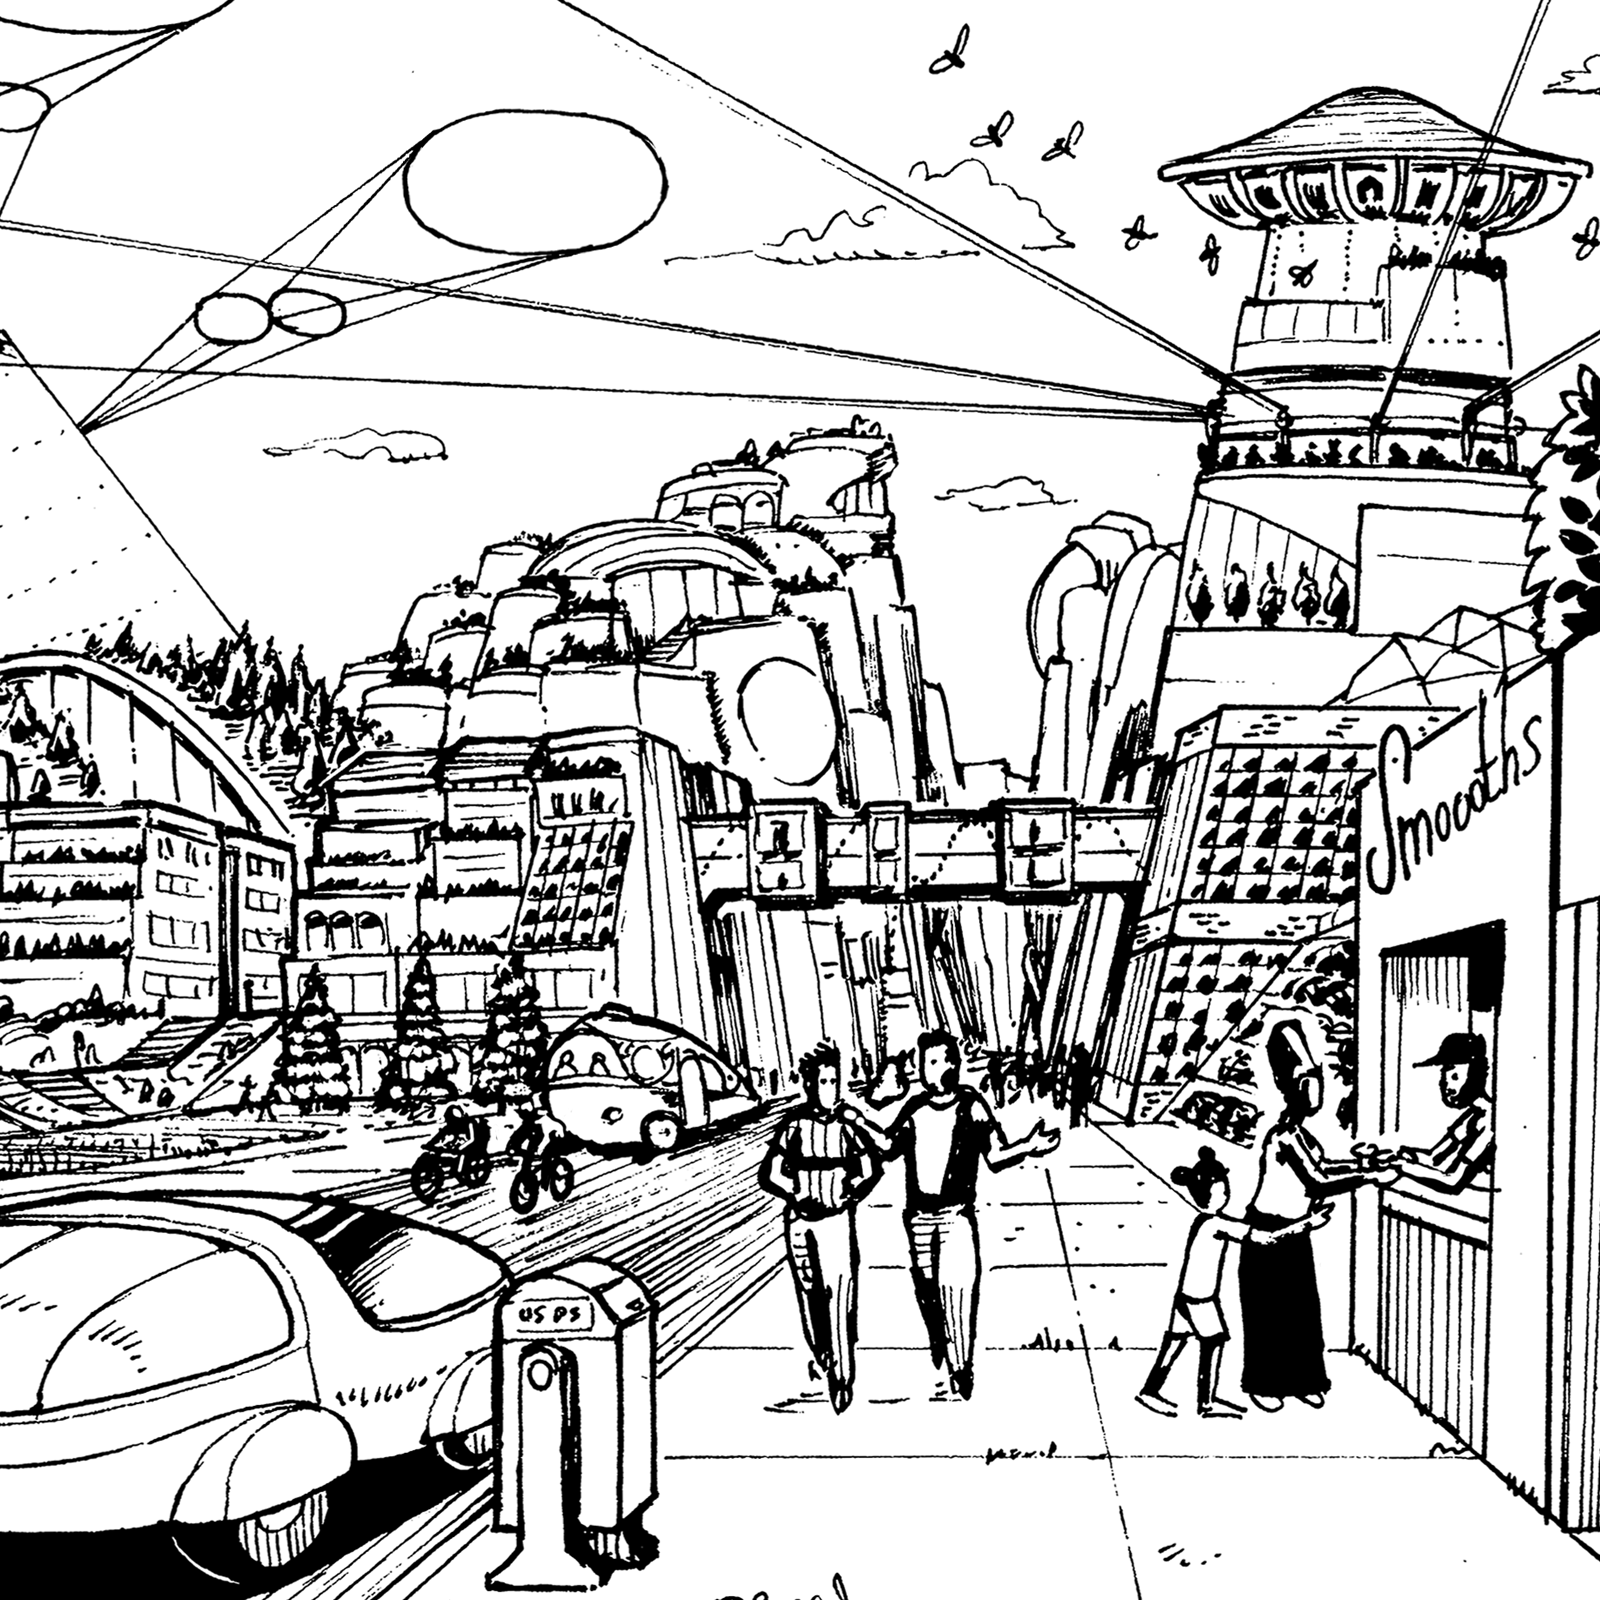 Drawing of futuristic city street by Marc Ngui